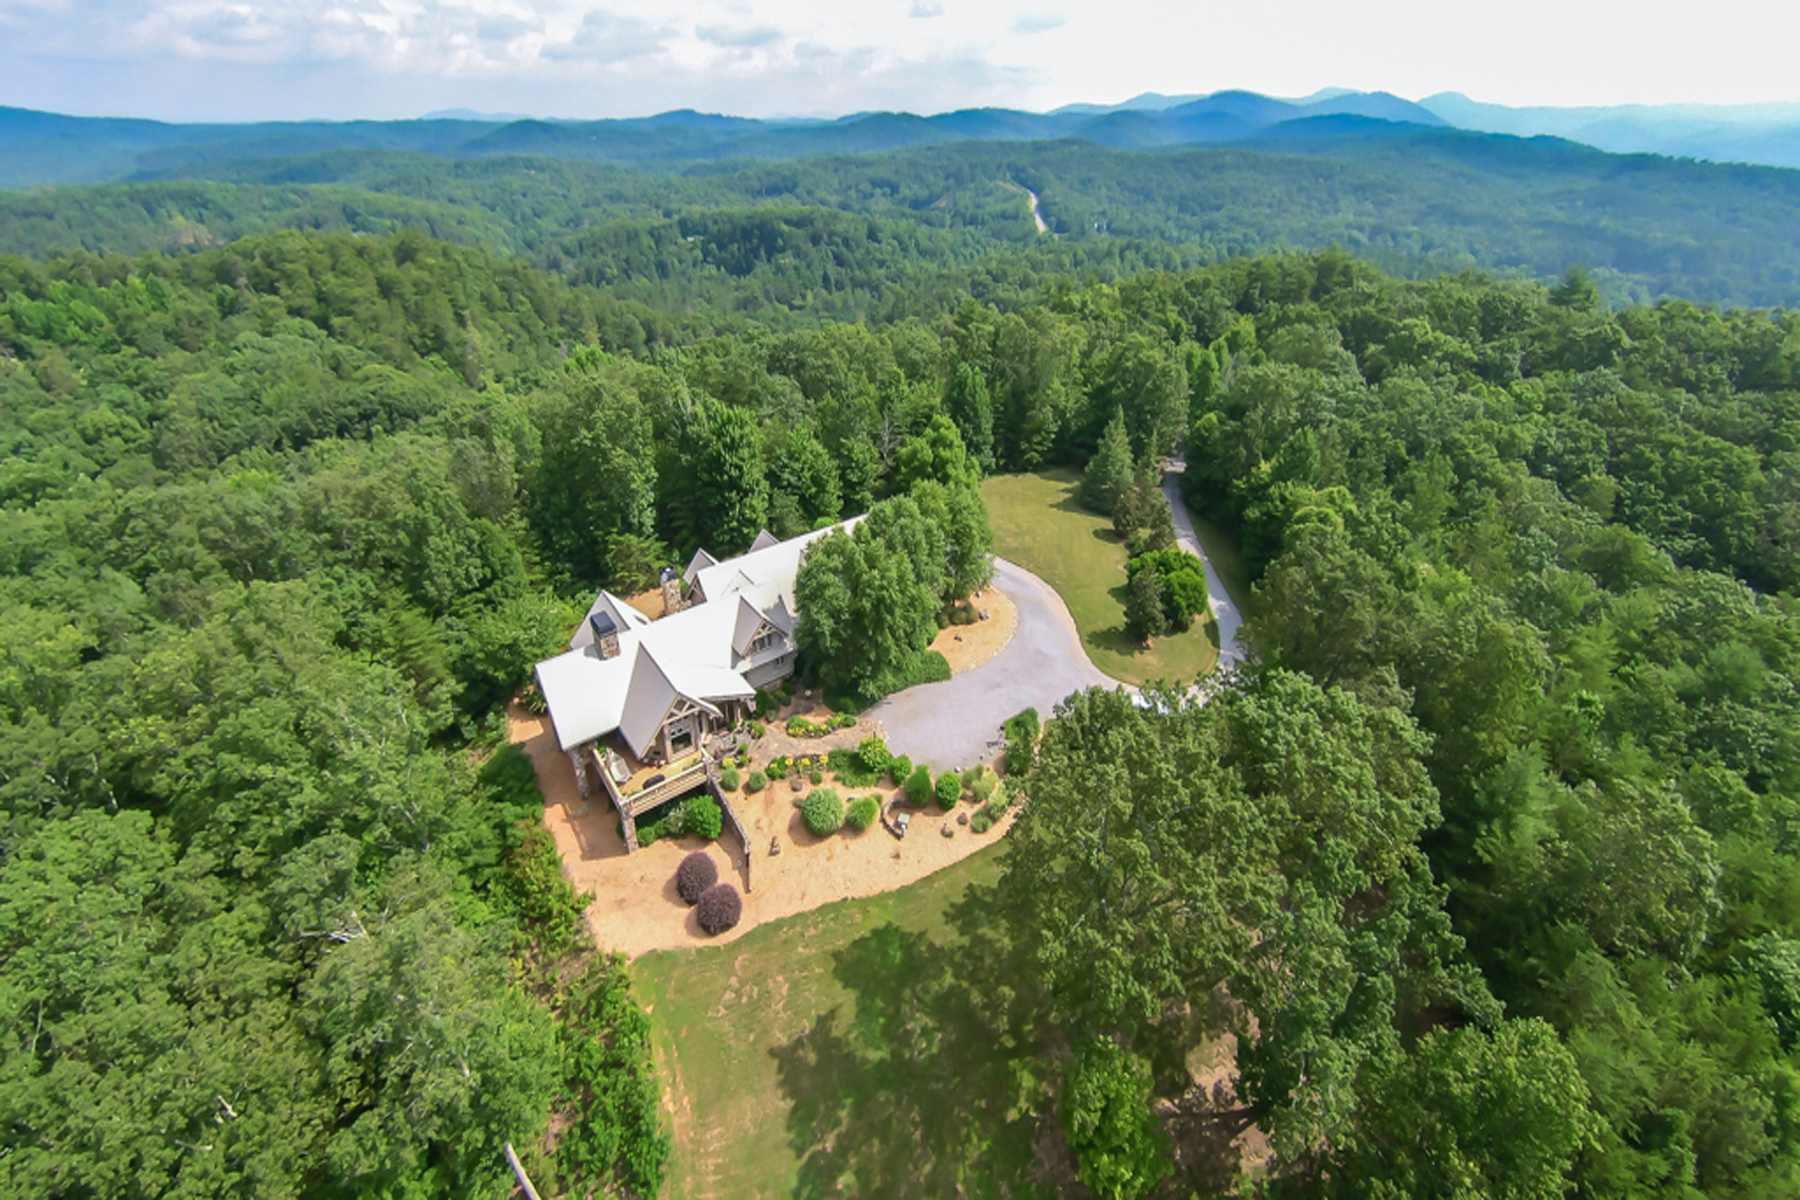 Ферма / ранчо / плантация для того Продажа на Exquisite Lodge On 33 Acres In North Georgia Mountains 1133 Greystone Road Talking Rock, Джорджия 30175 Соединенные Штаты